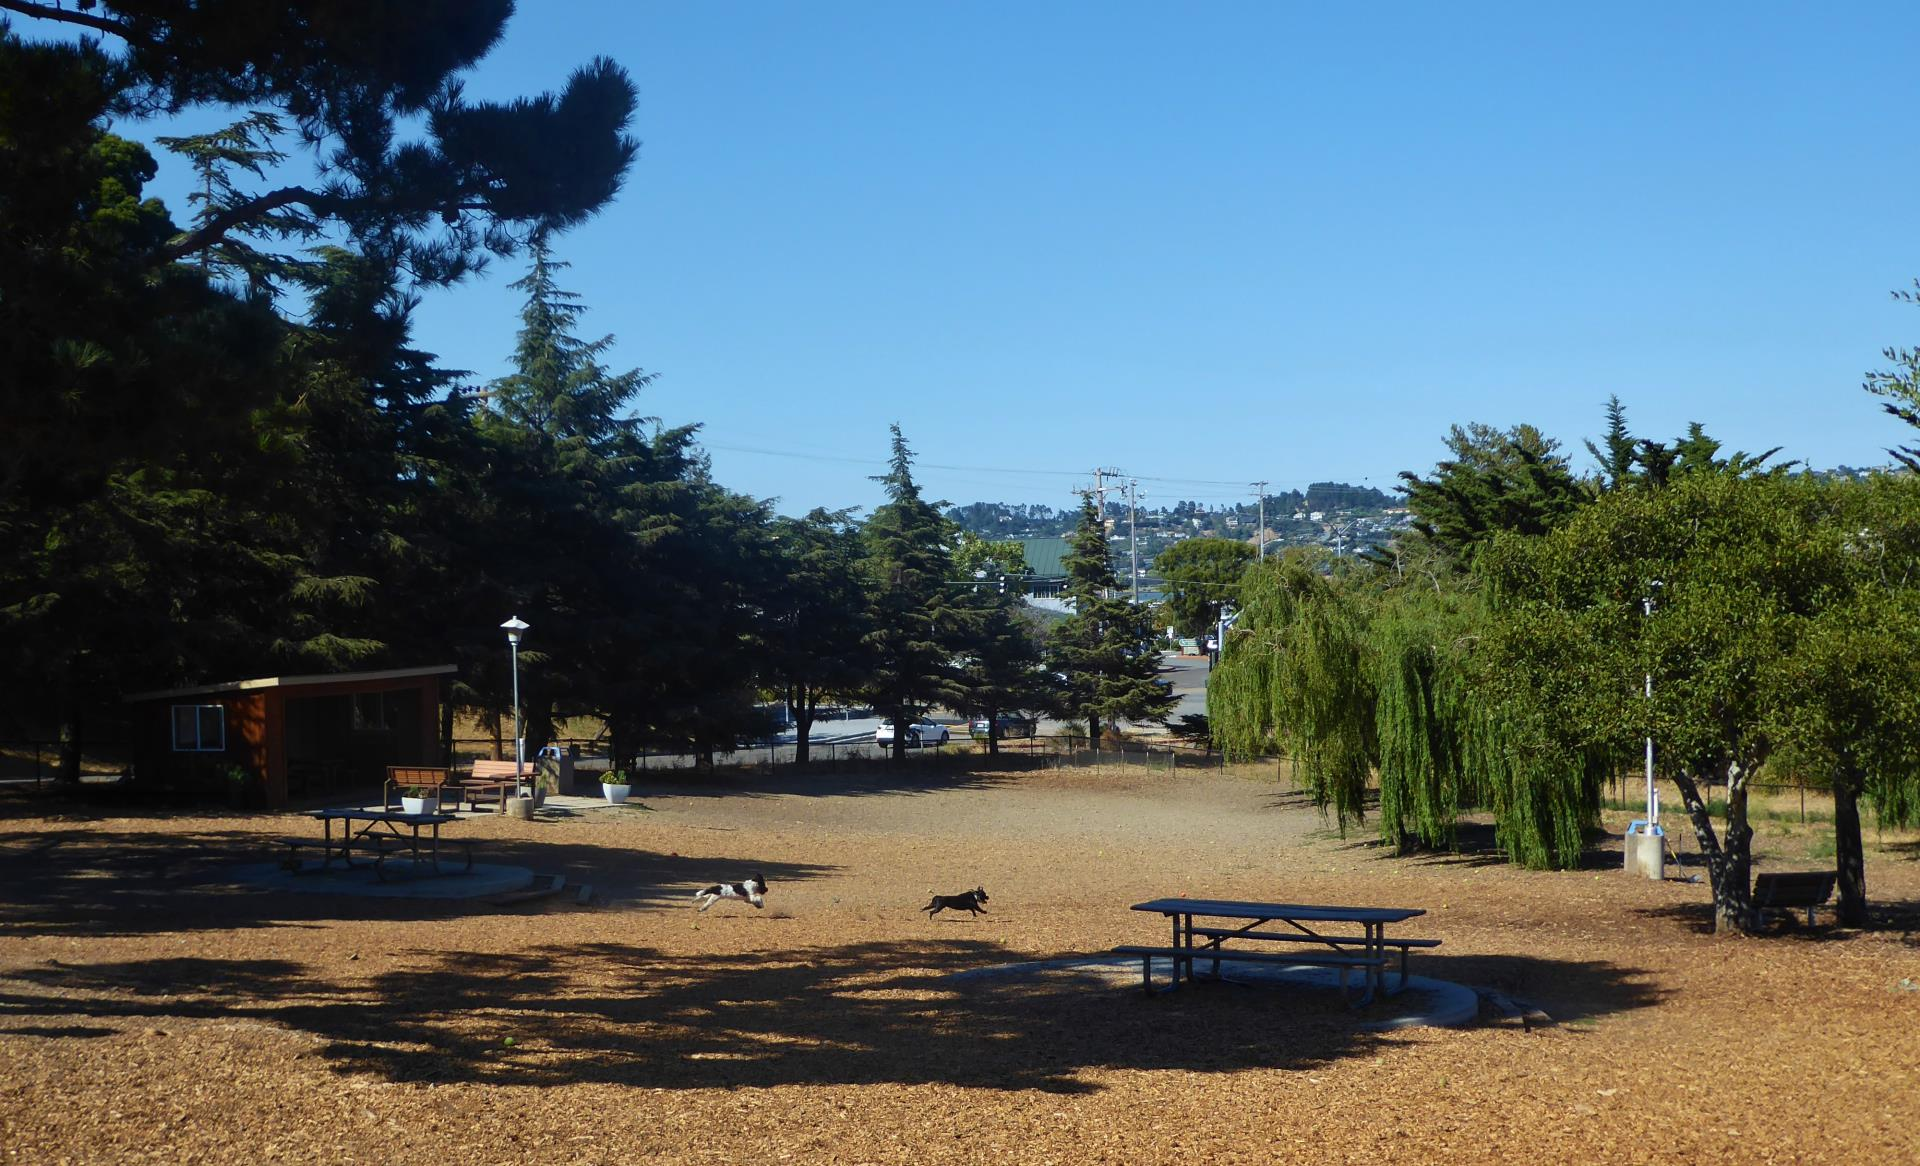 Remigton Dog Park